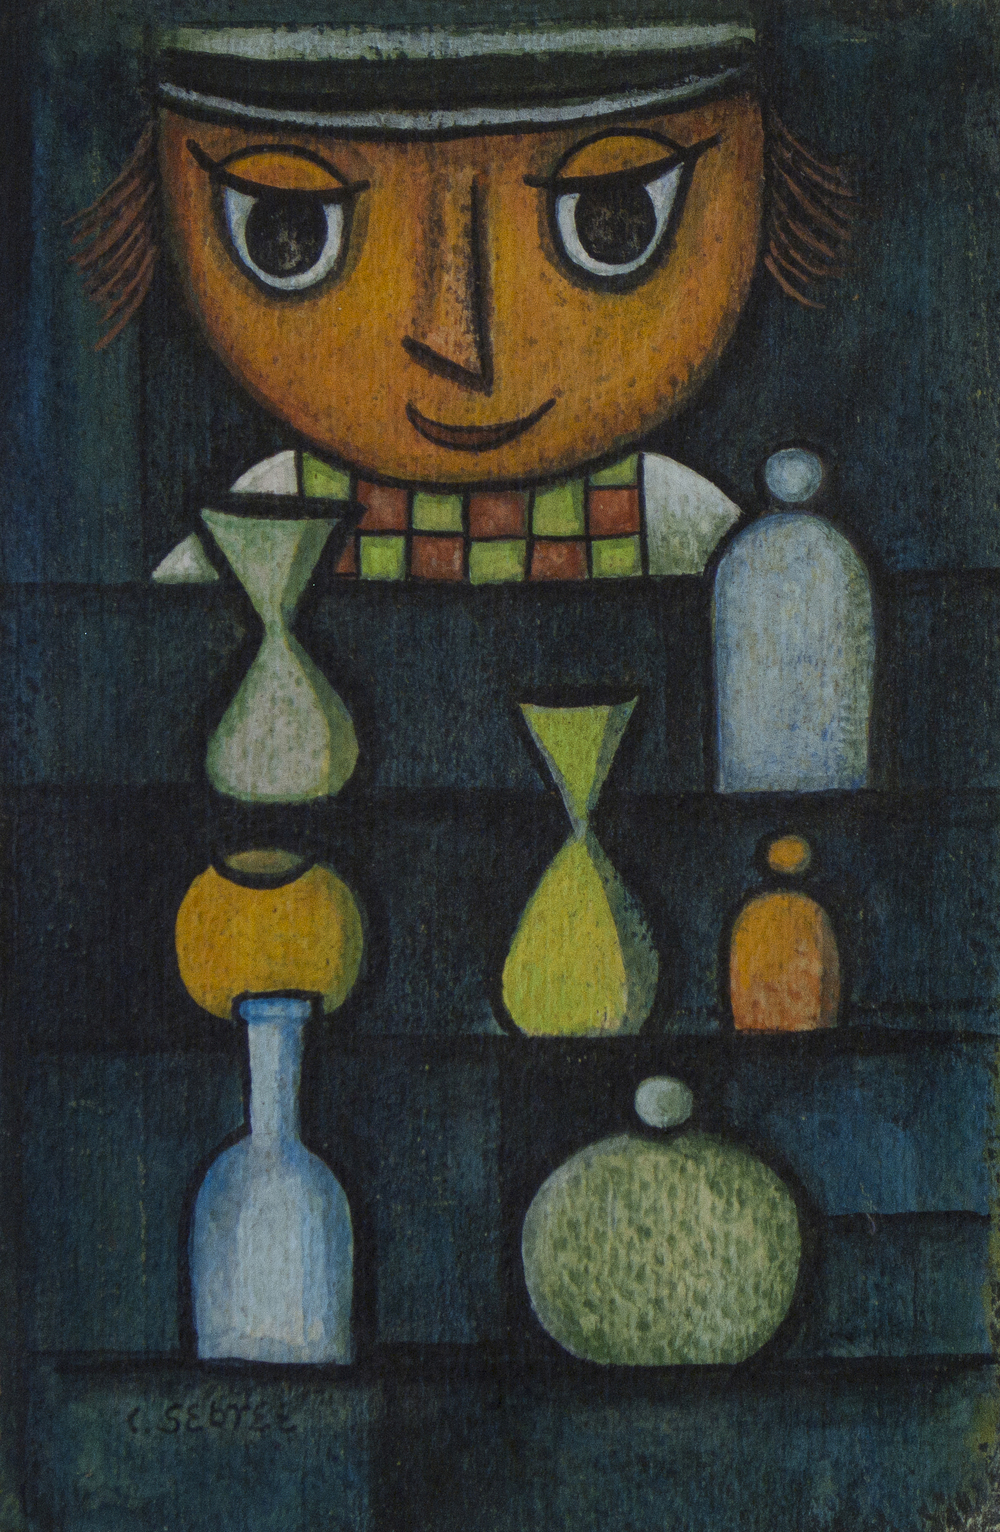 Untitled (Man With Vases)